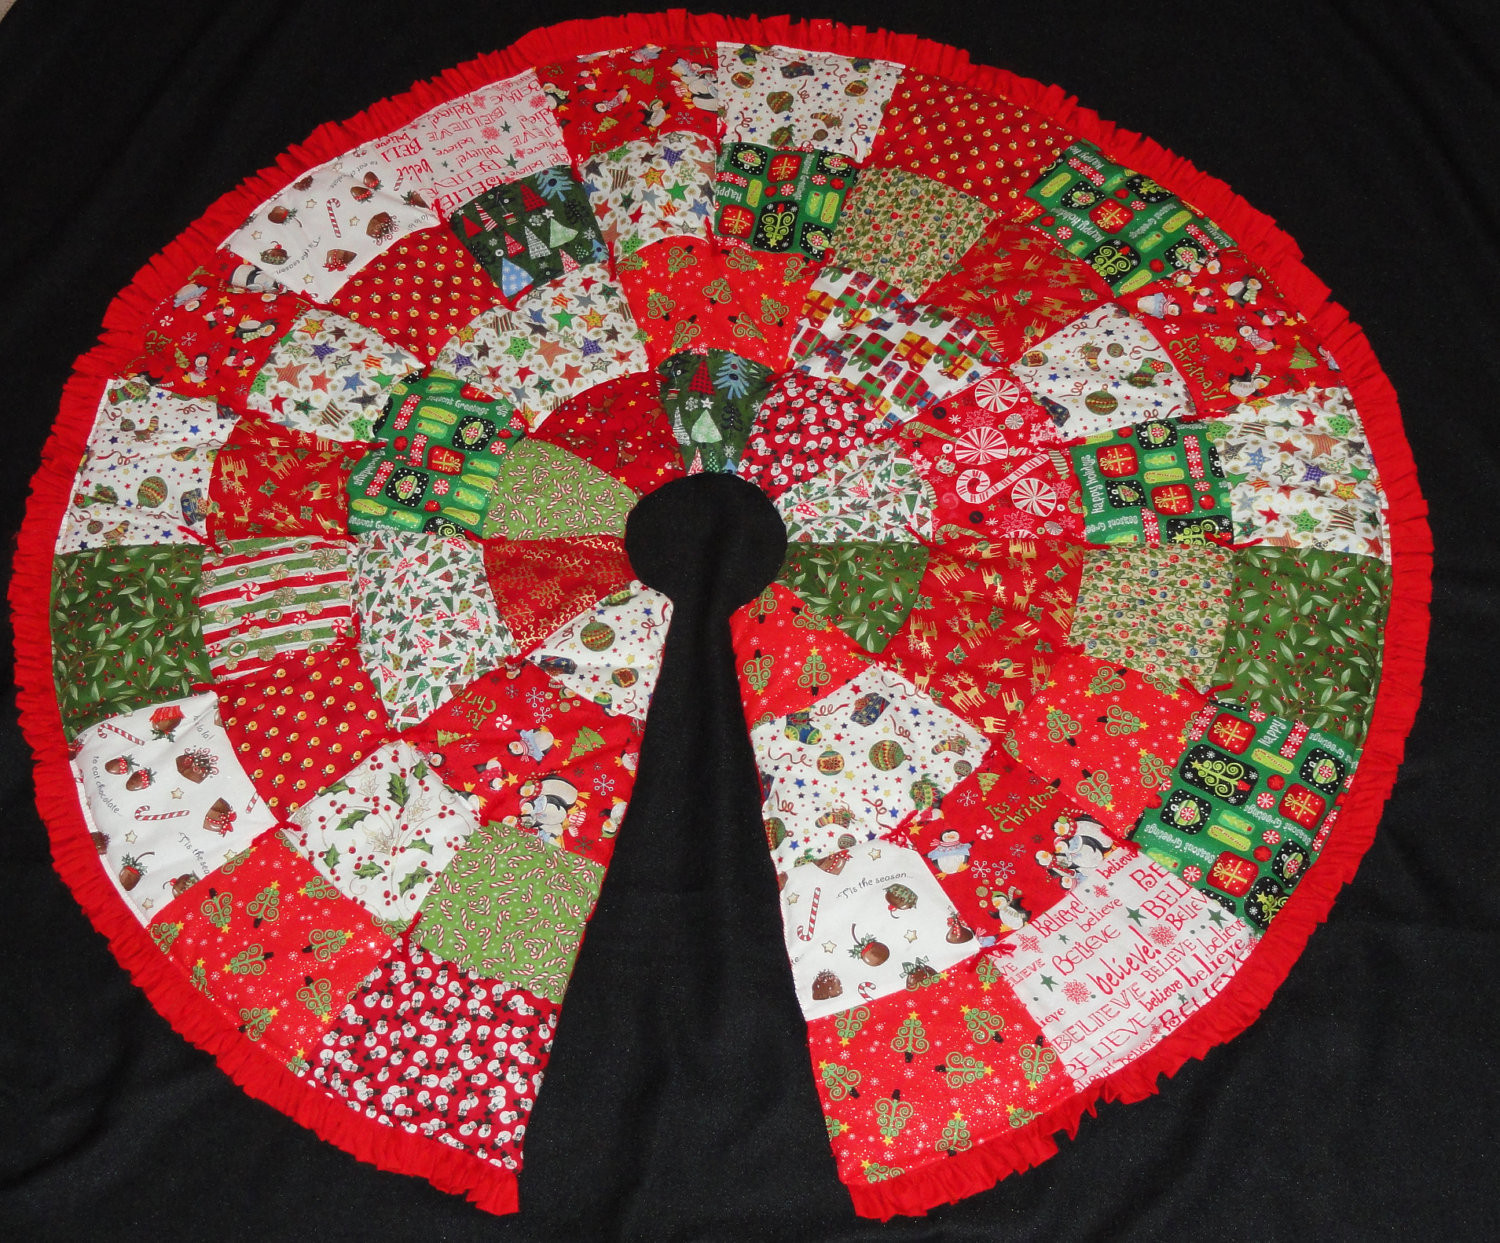 Quilted Christmas Tree Skirt Patterns – Happy Holidays